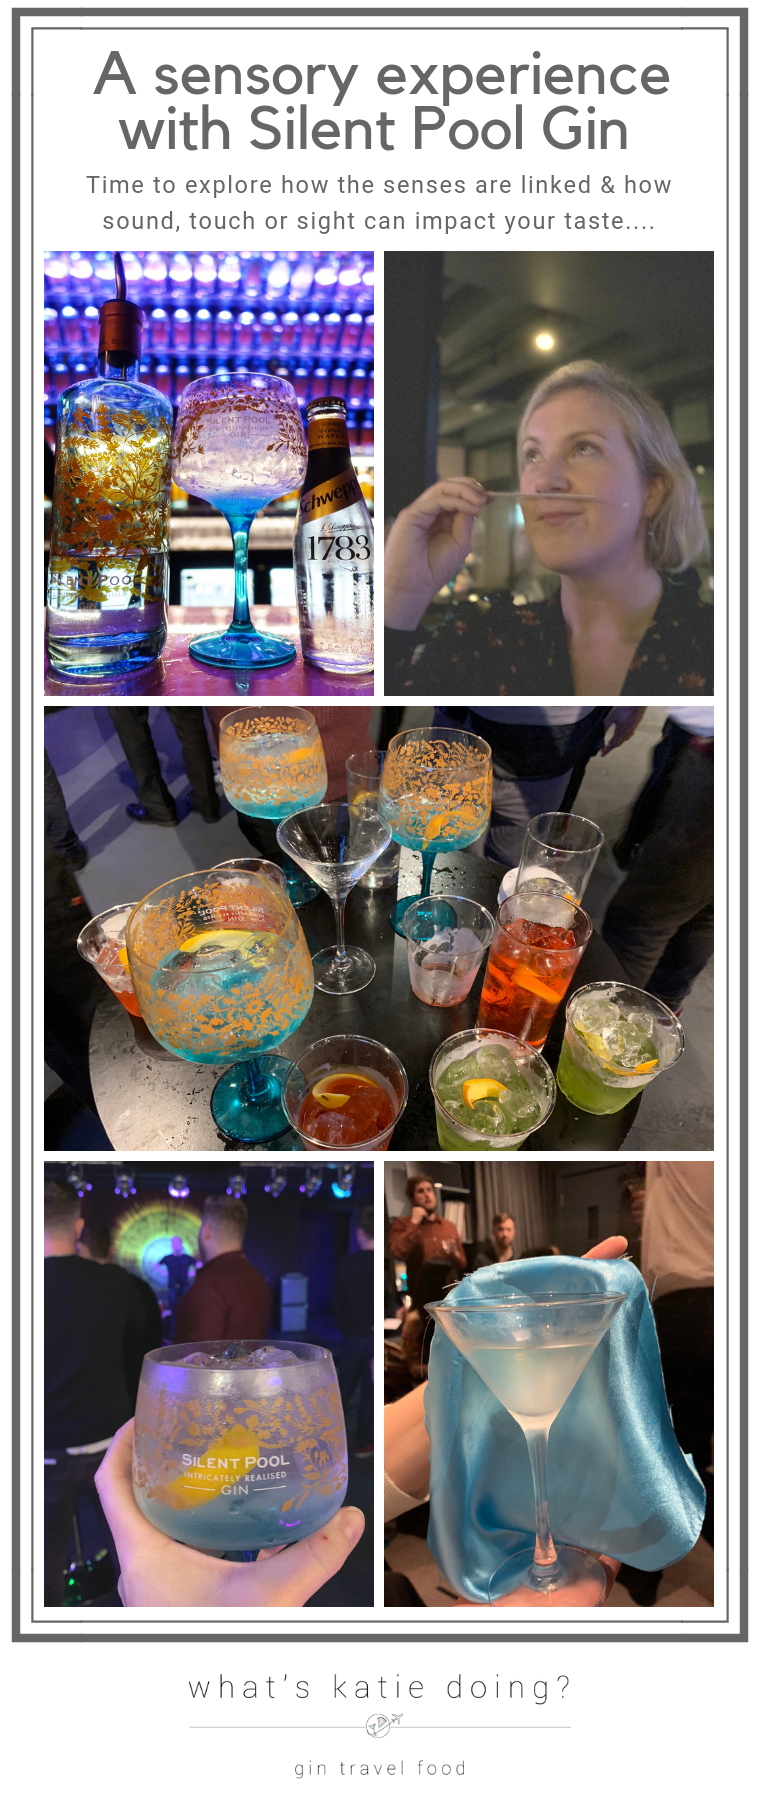 A sensory experience with Silent Pool gin on What's Katie Doing? blog. Time to explore how the senses impact each other in the world of gin!